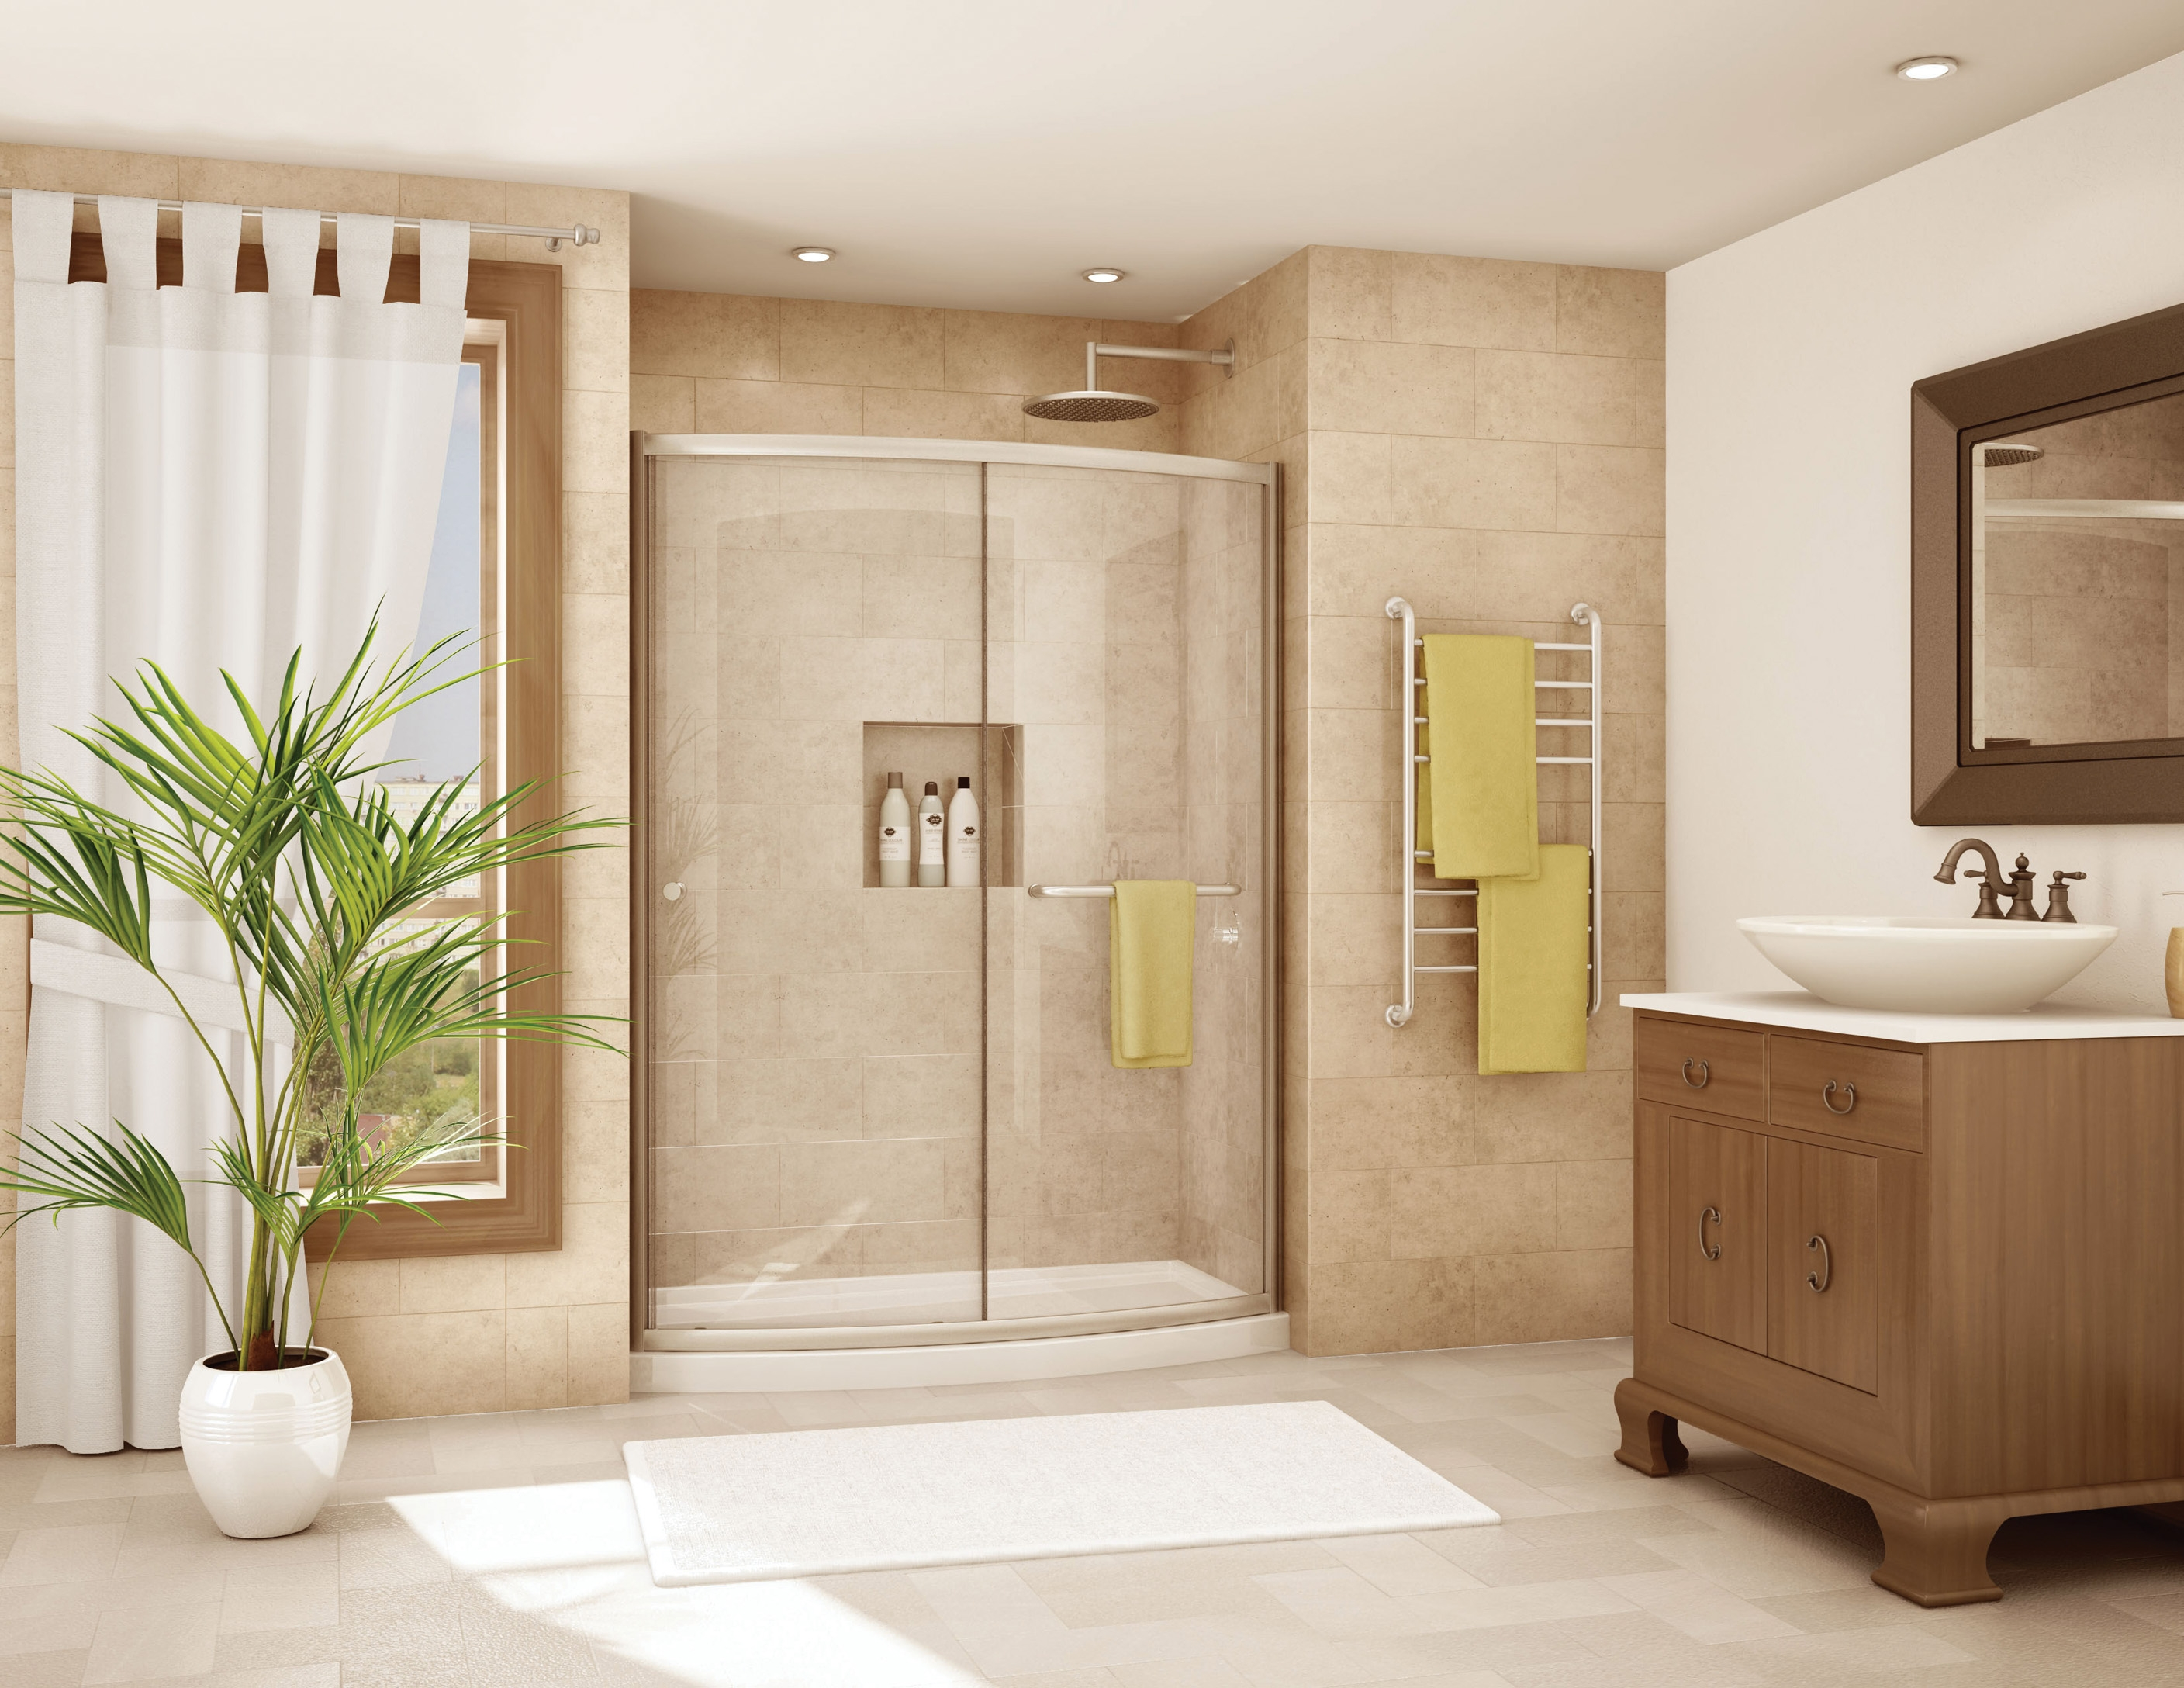 Washroom-Decoration-ideas (9)